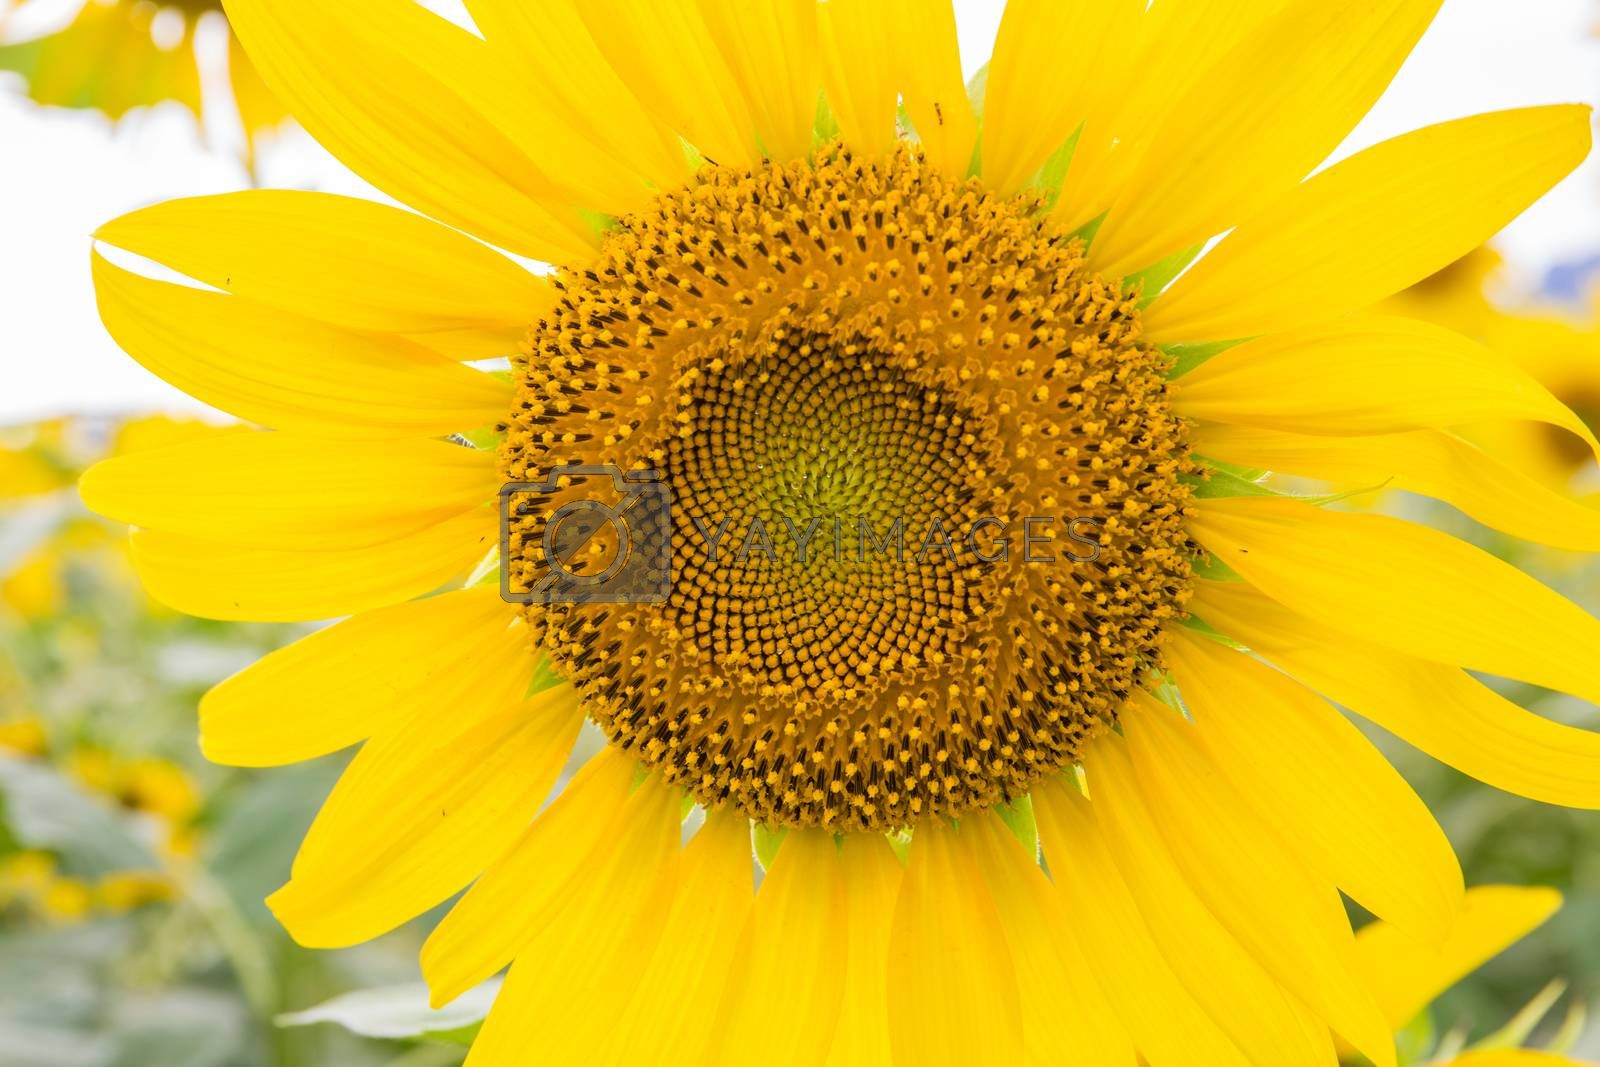 Royalty free image of Sunflower by tuchkay